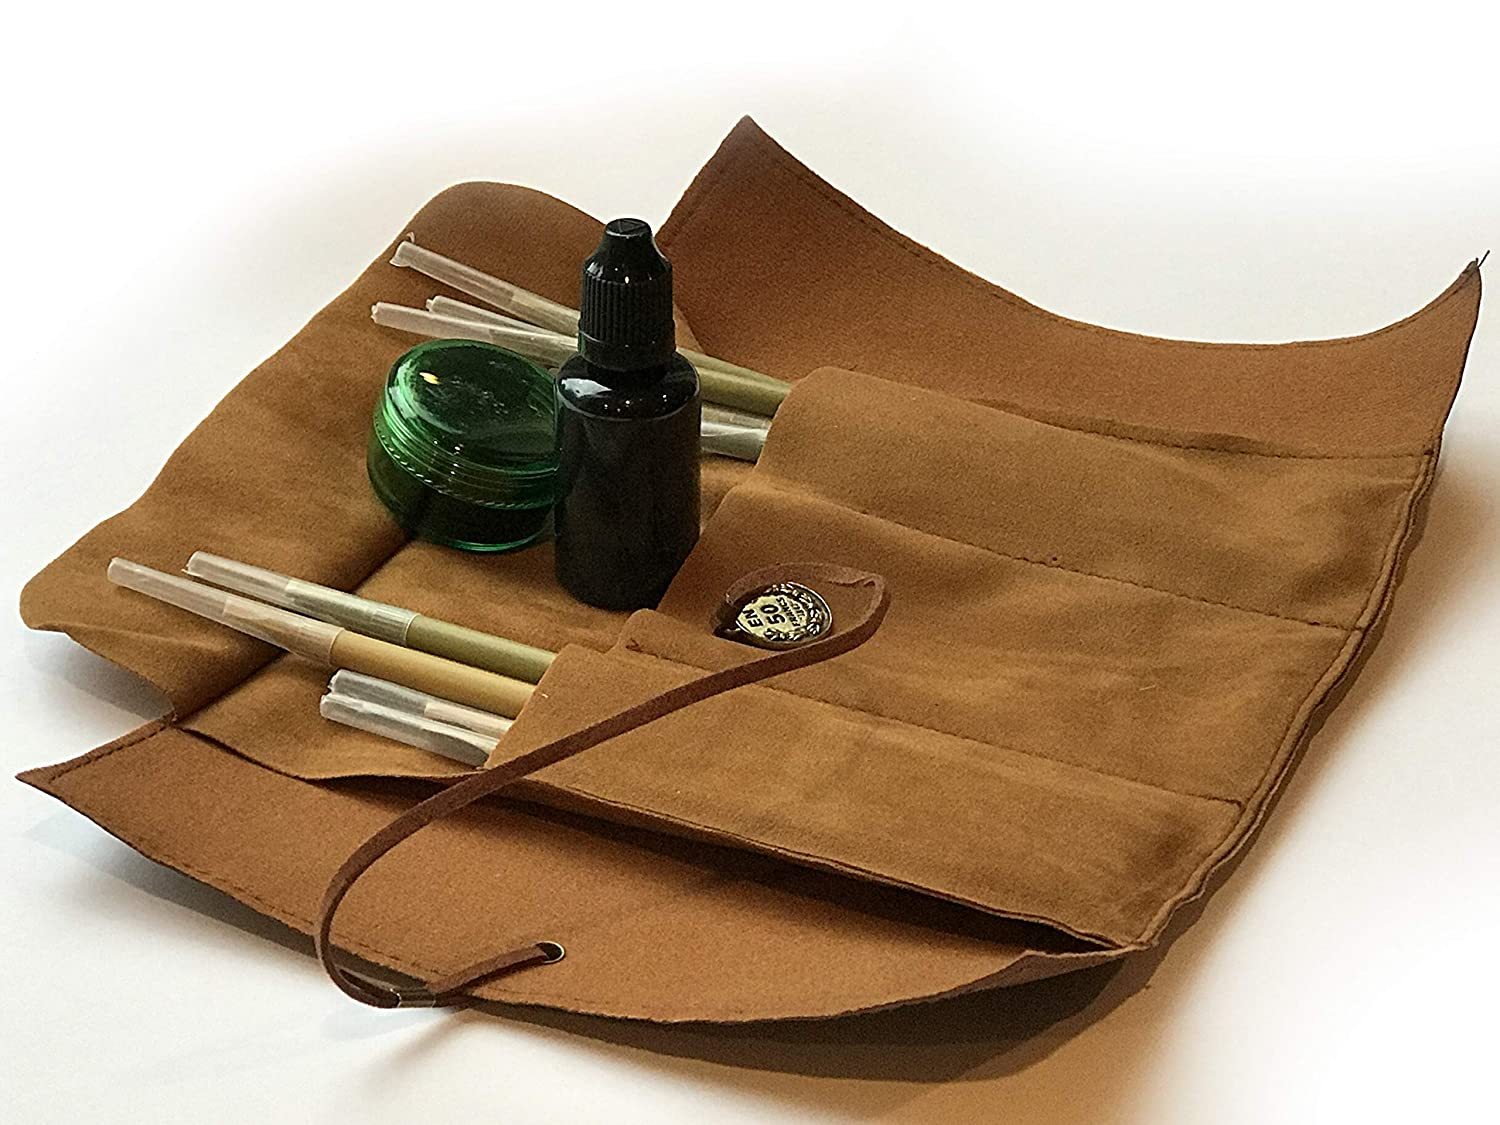 Arabic Calligraphy Set 10 Bamboo pens 30ml Black ink 30ml inkwell with sponge. Home modification